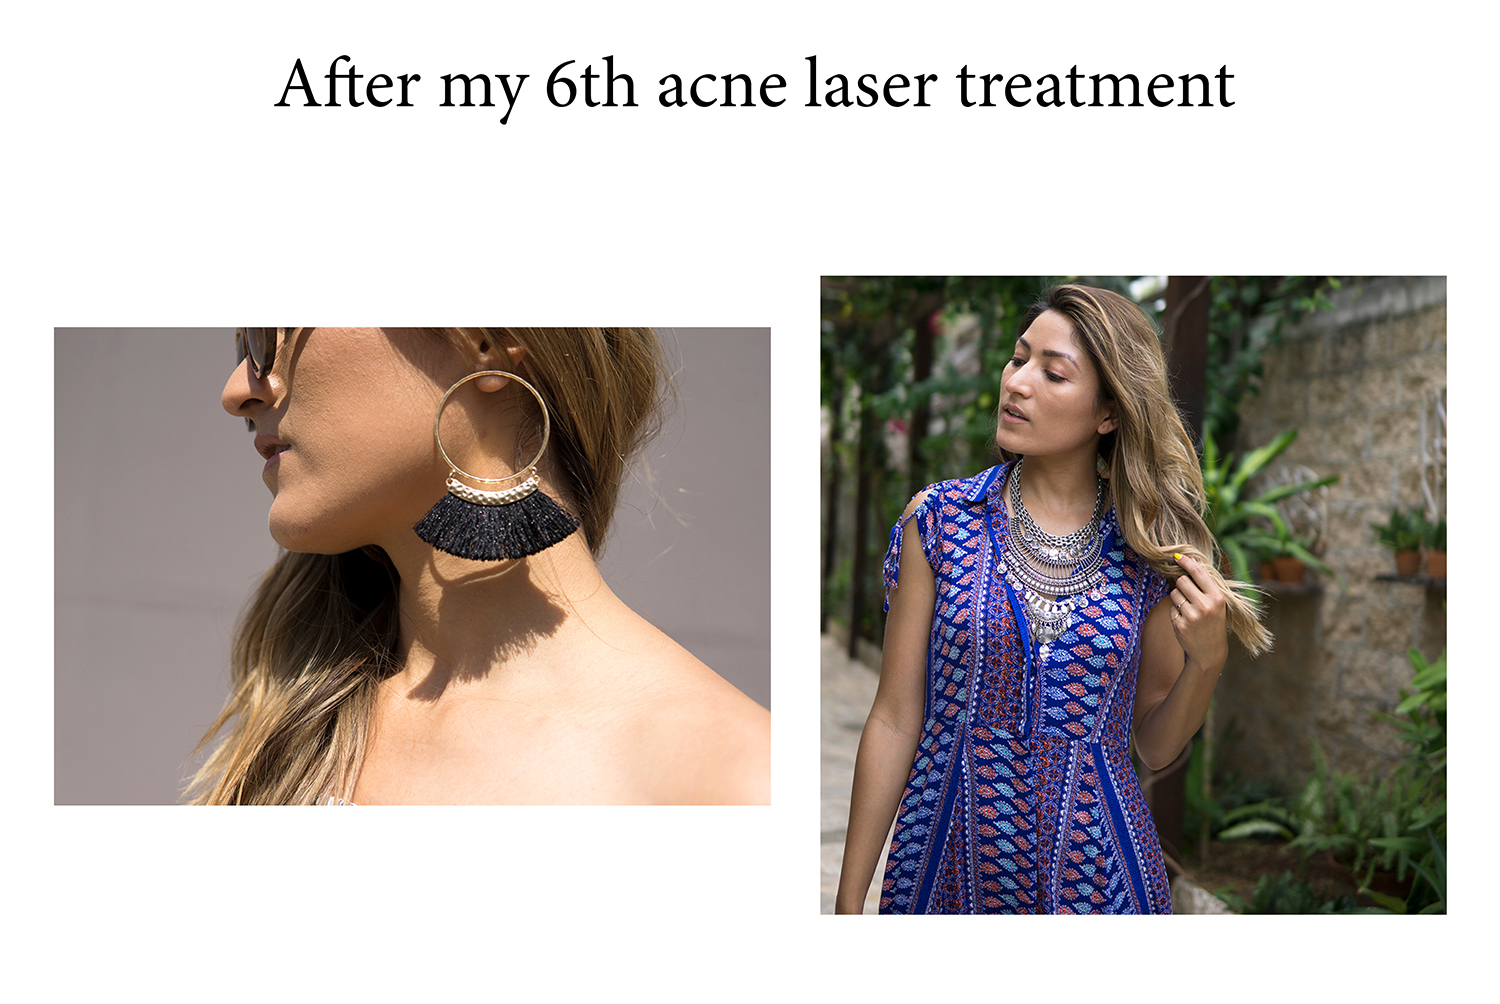 Acne Laser Treatments with AE Skin, AE Skin, Acne, laser, treatments, facial, skin, beauty, merlon beauty, beauty blogger, blogger, la blogger, trending, skin care